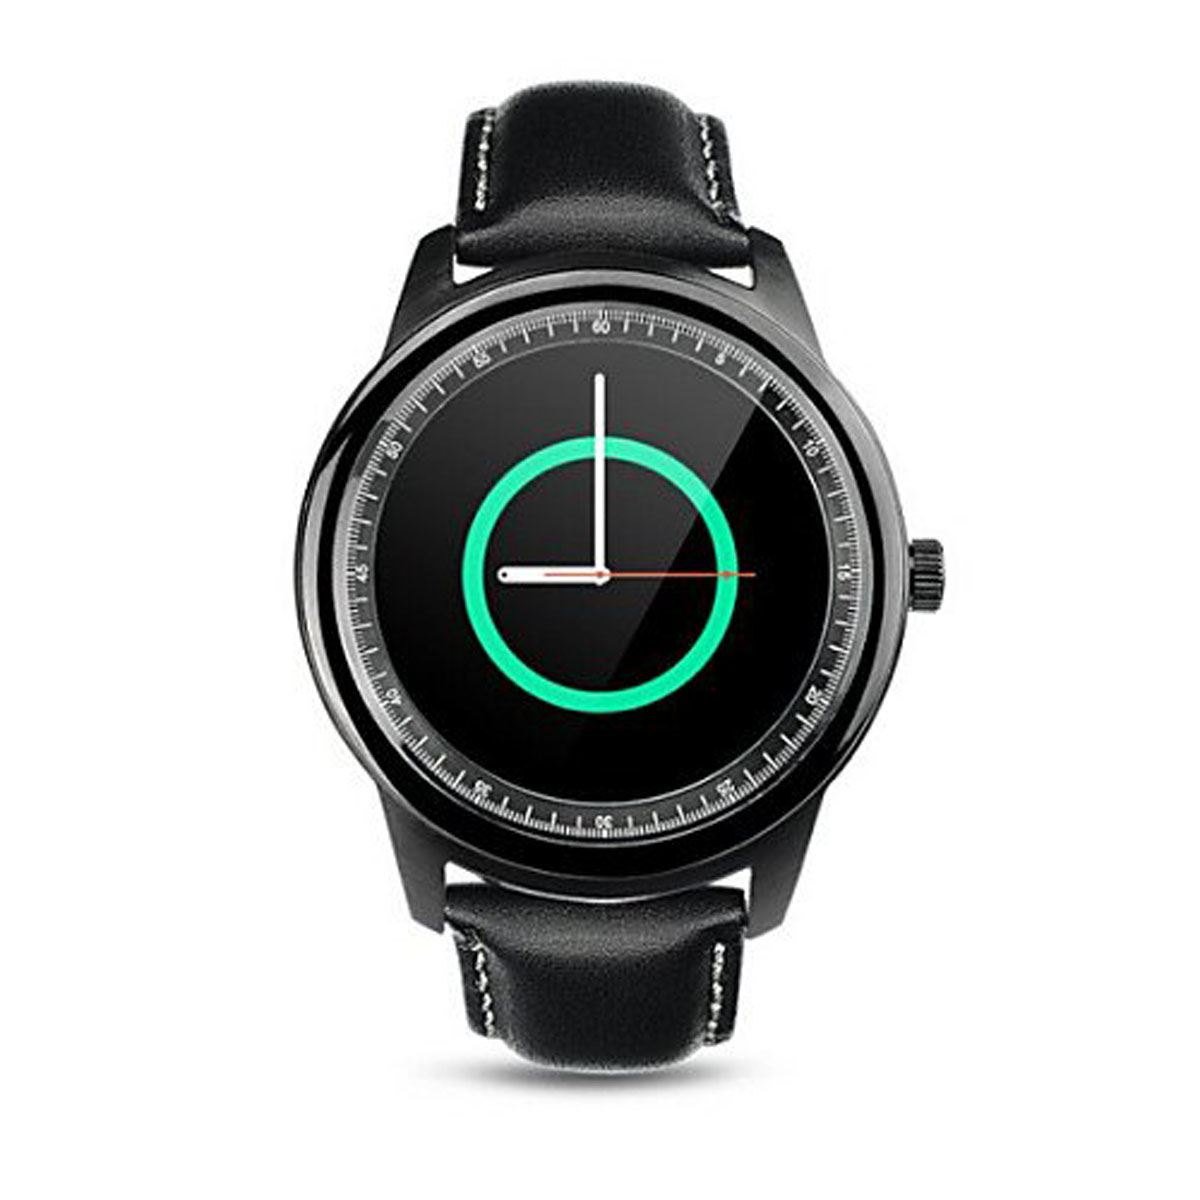 Tkydm365  smart watch, pantalla lcd táctil de 1.33